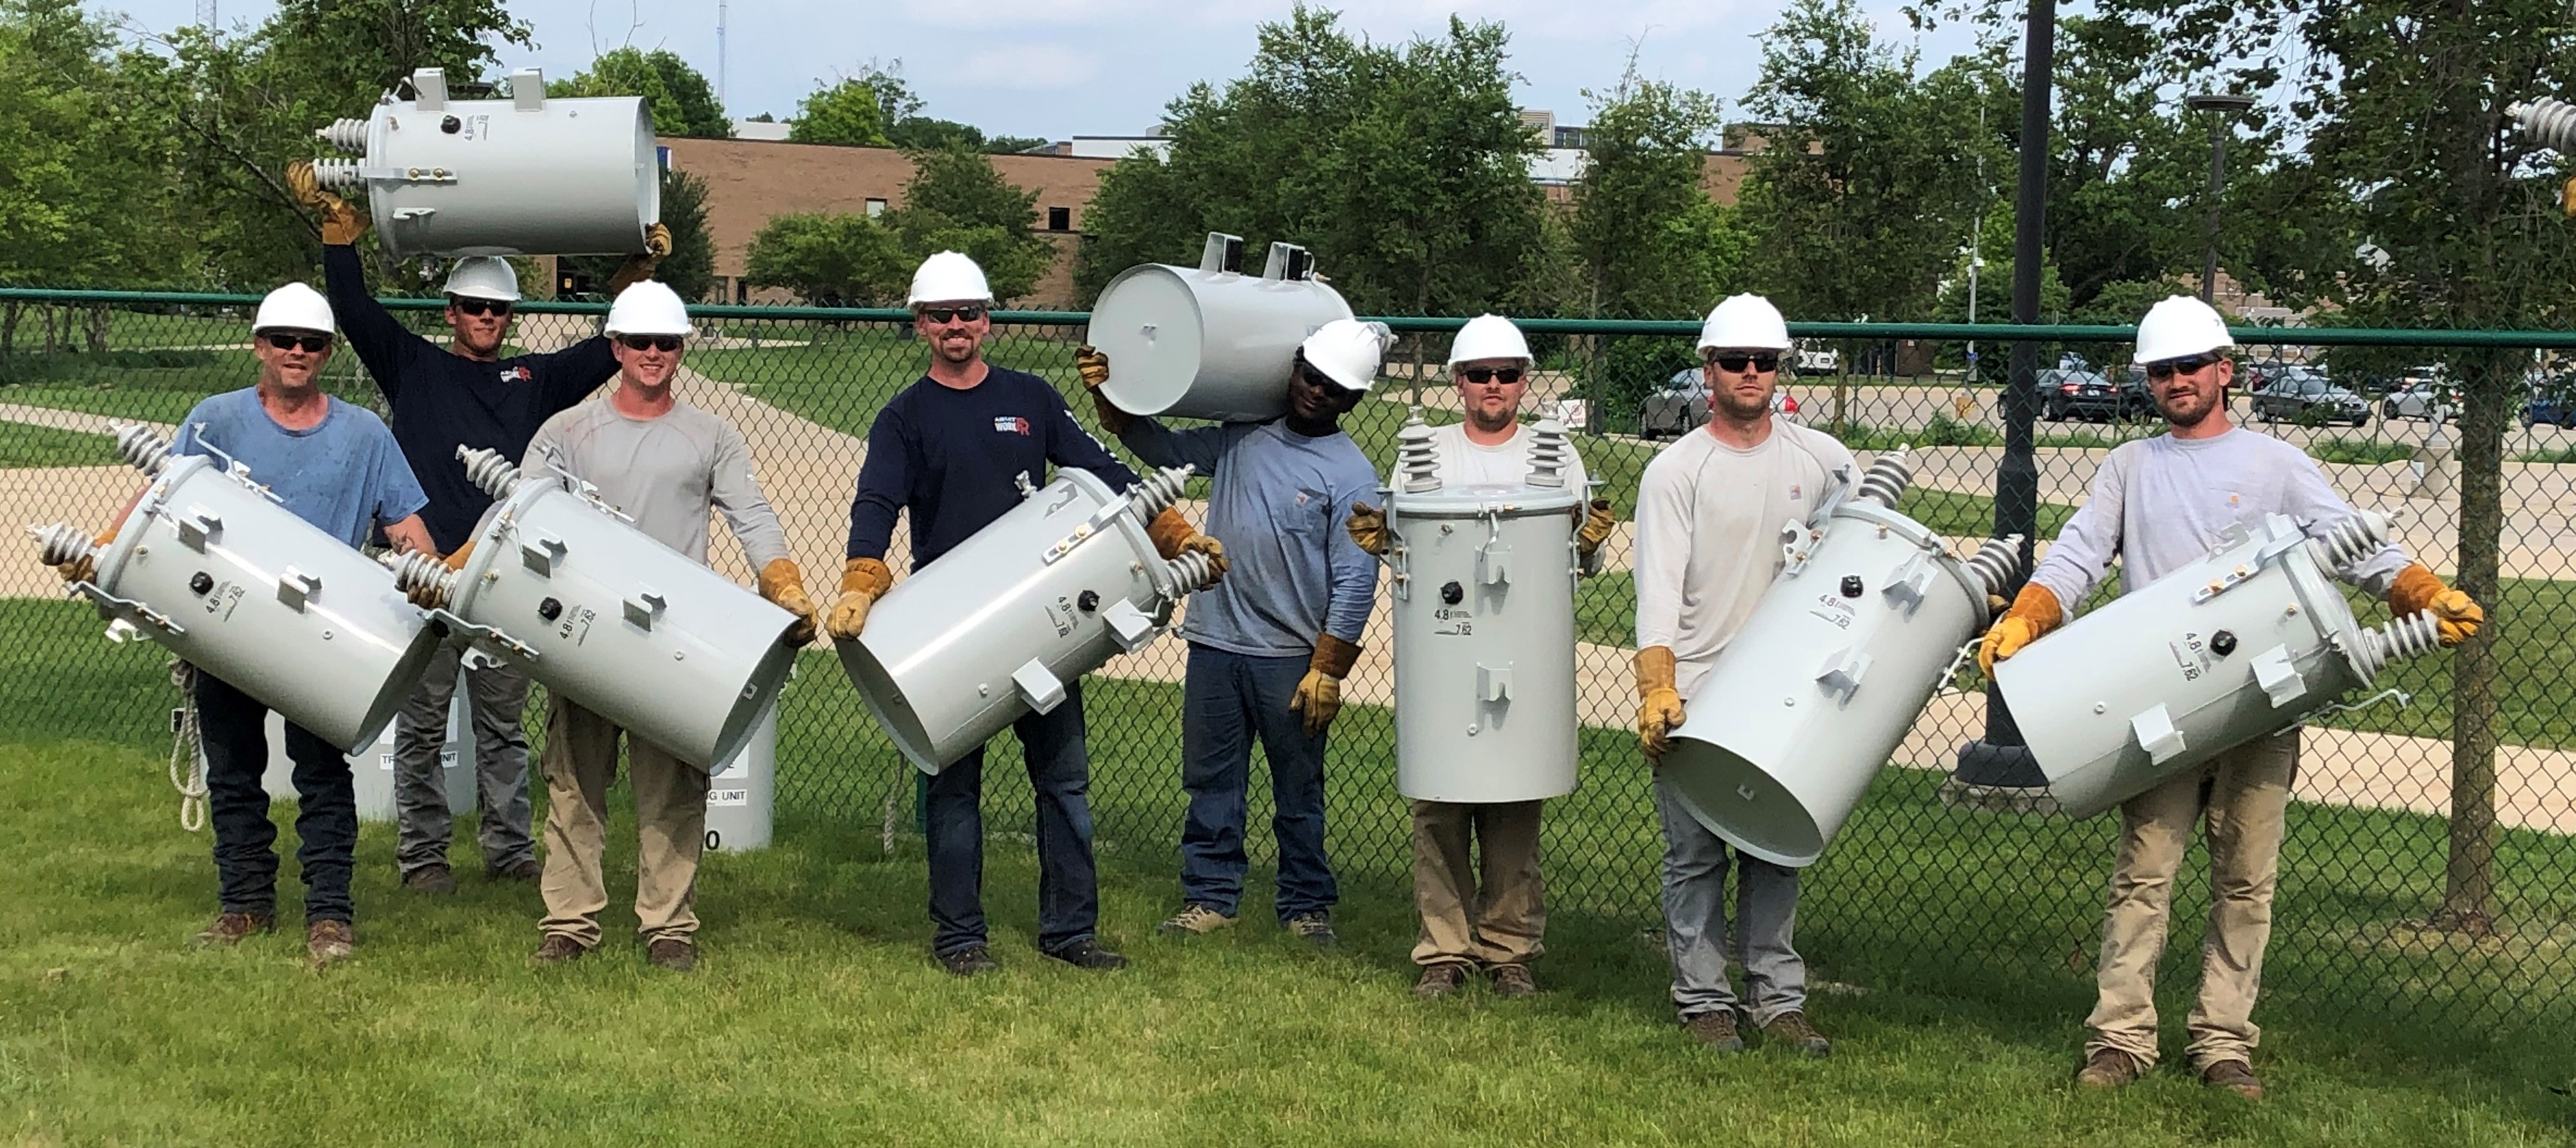 DTE workers show their muscle by lifting transformers. HFC is using oil-free transformers due to EPA regulations and the close proximity of the Rouge River.